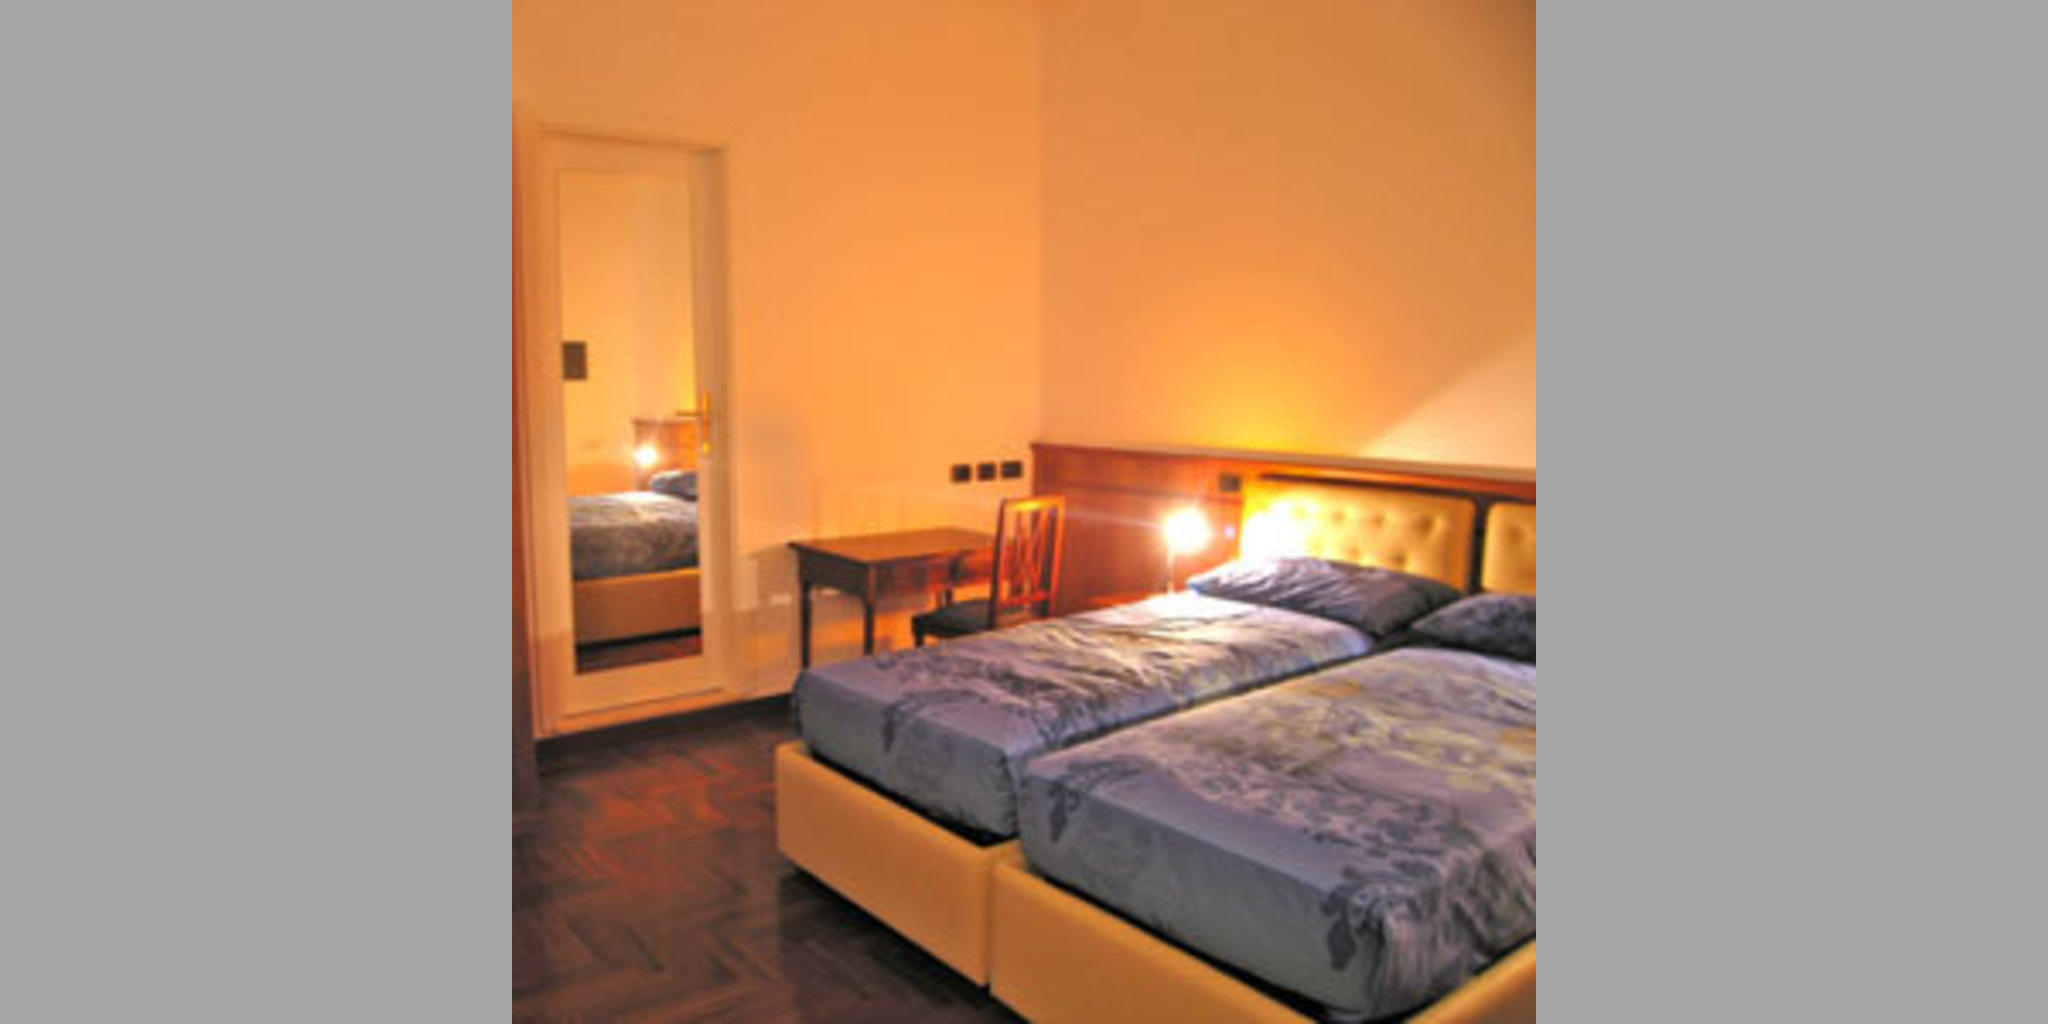 Bed & Breakfast Roma - Vaticano  Angelo Emo